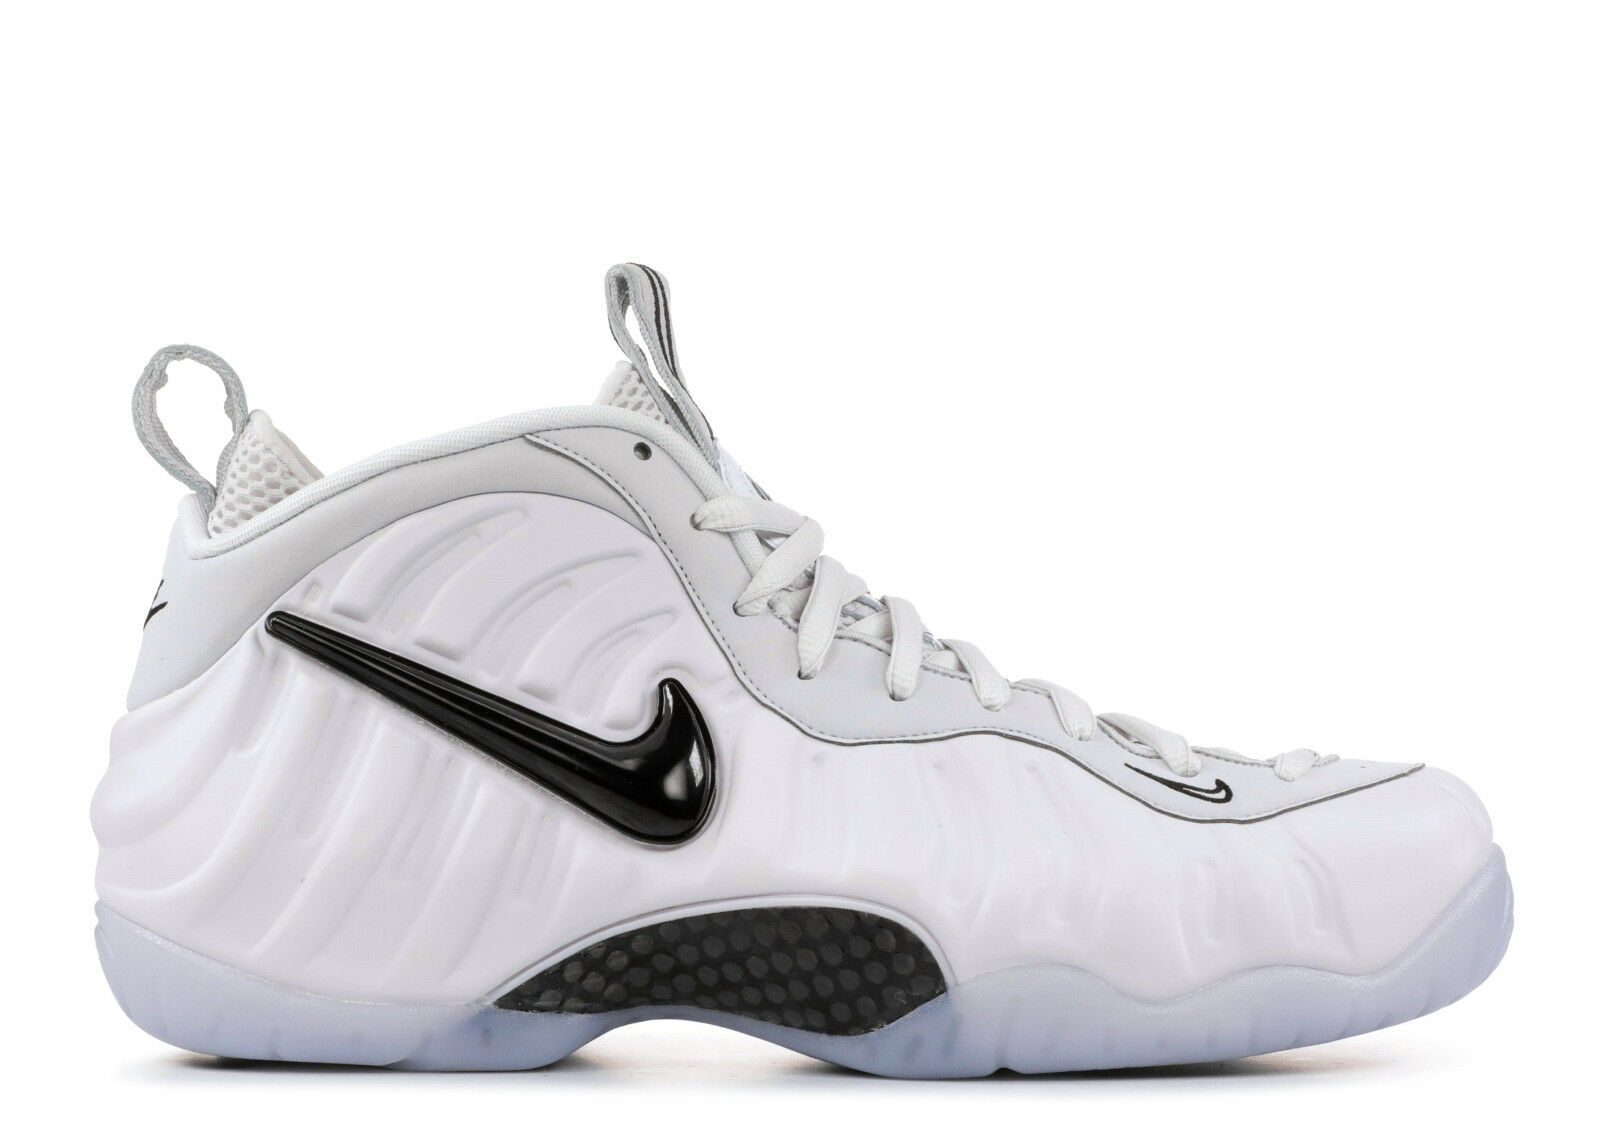 2018 nike air qs foamposite professionista come star qs air grey white taglia 12.jordan penny 119dc3